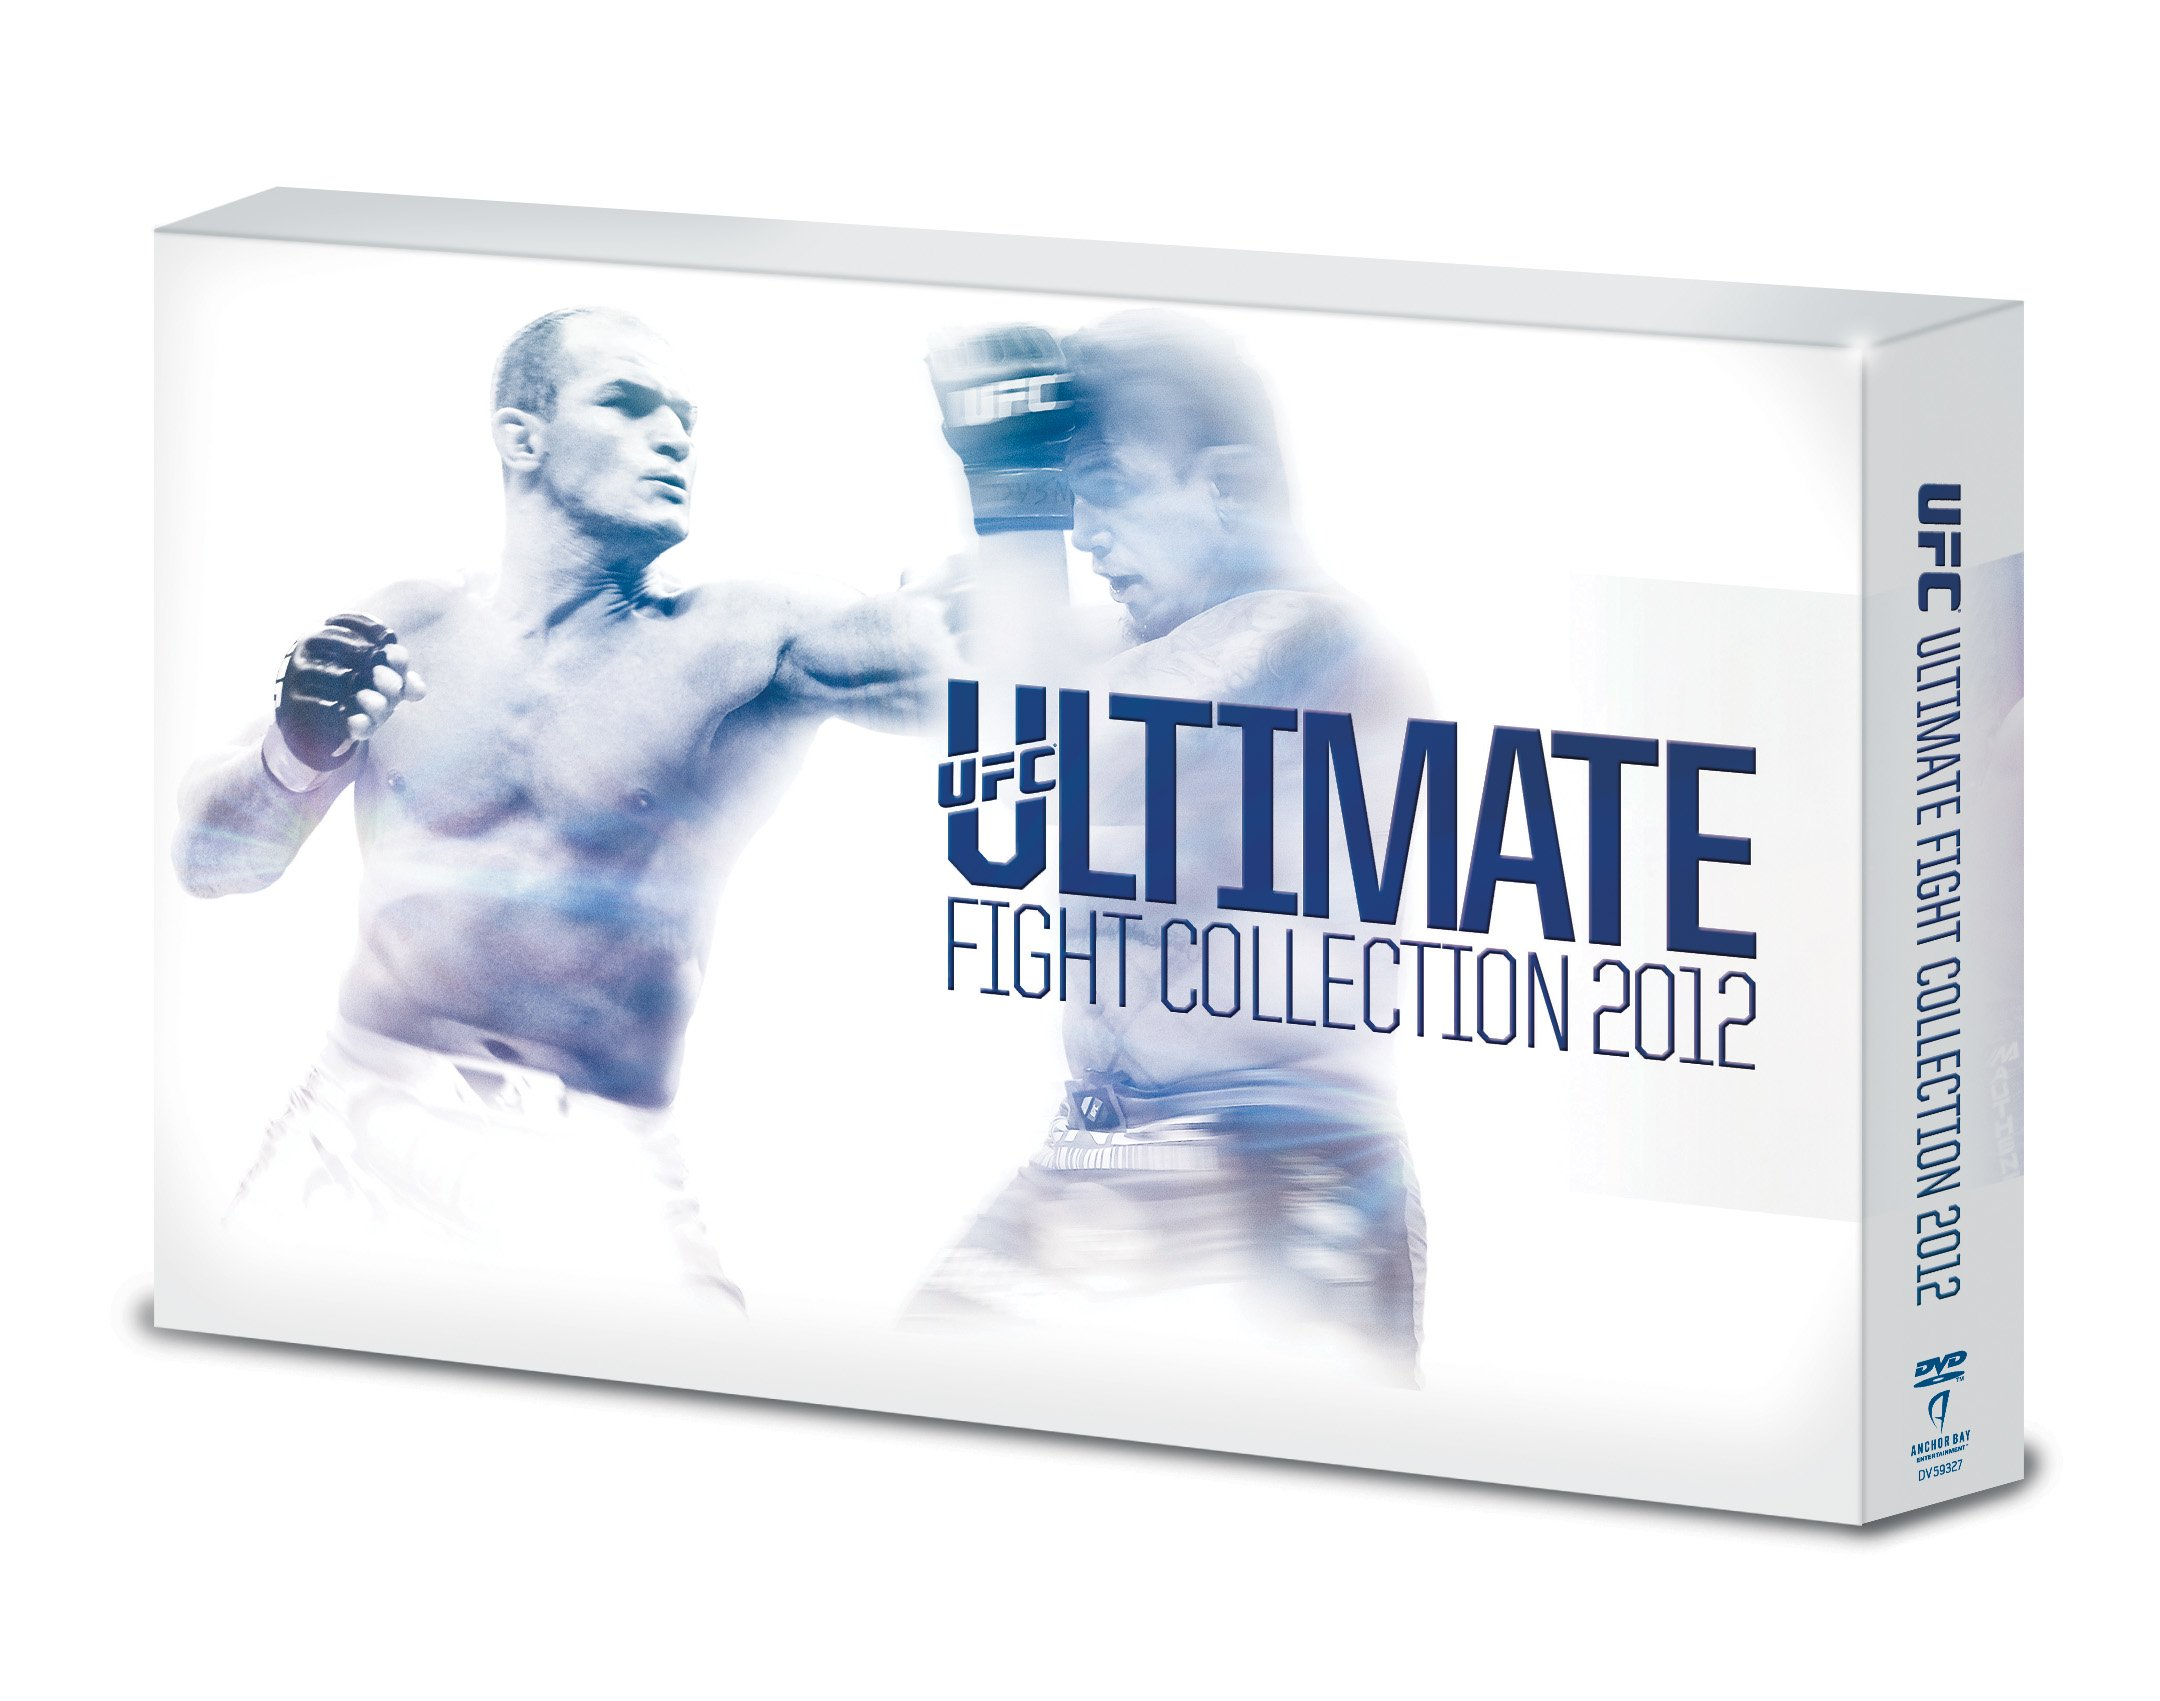 UFC Ultimate Fight Collection 2012